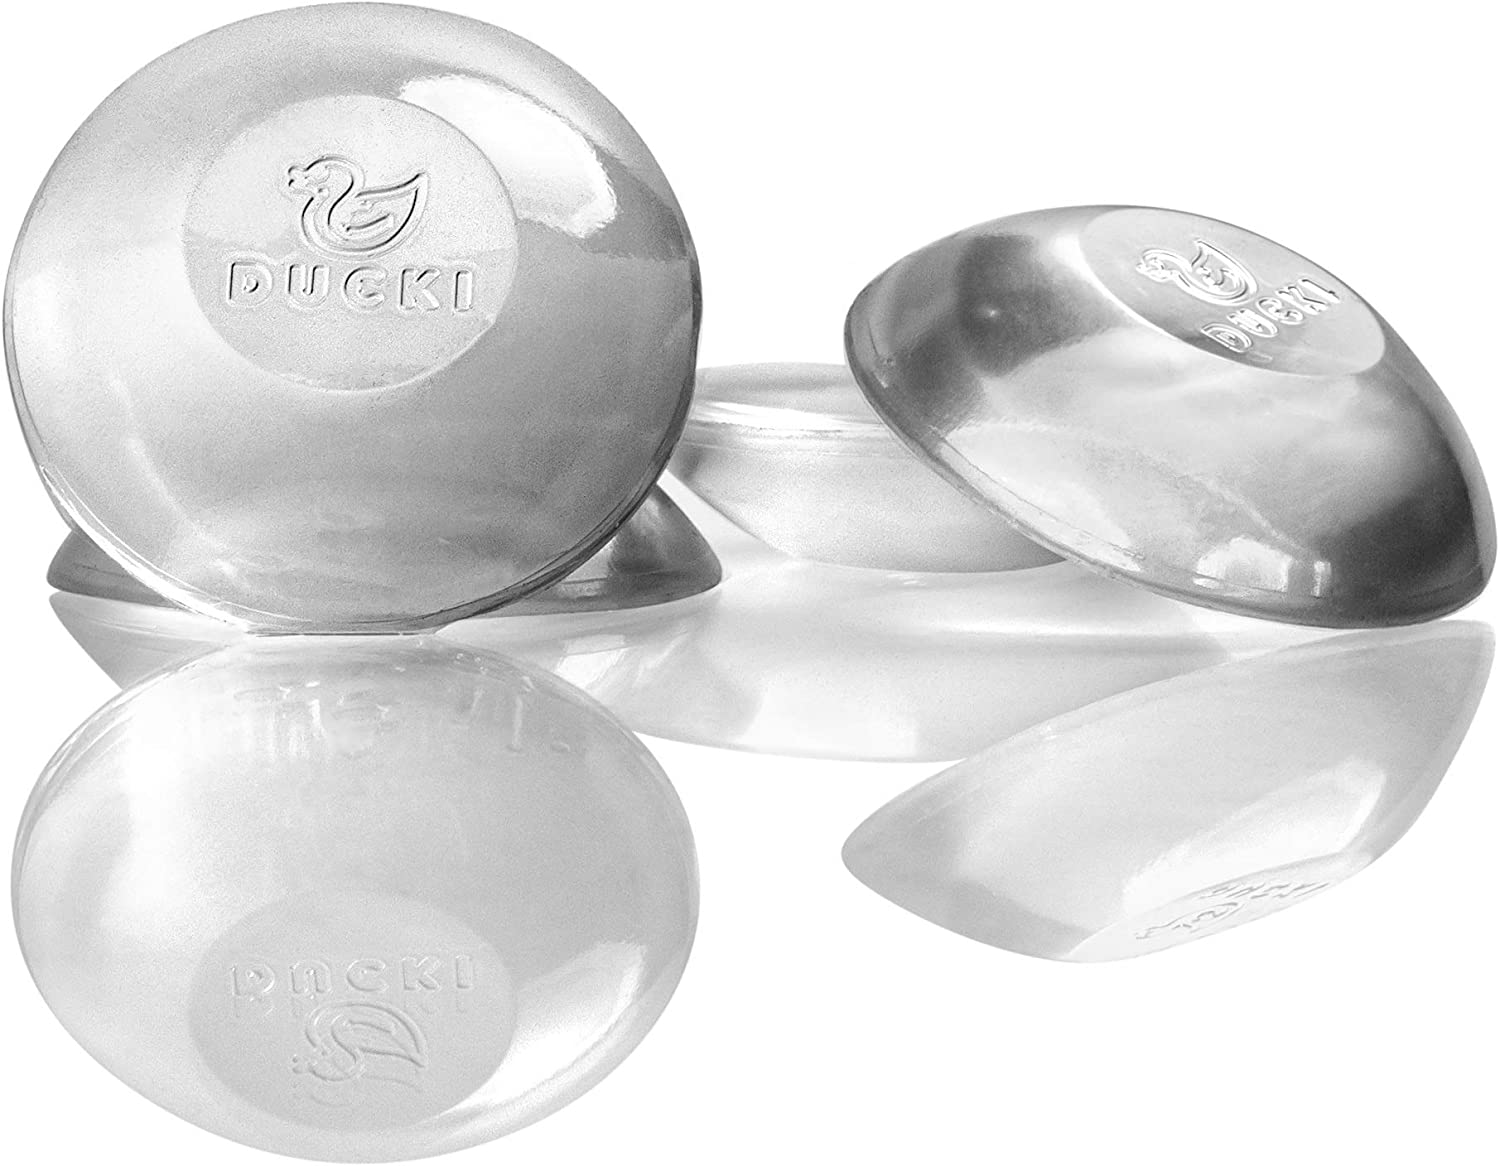 Door Stopper Wall Protector (4pk) - Quiet, Shock Absorbent Gel - Adhesive Reusable Bumper Protector, Wall Shield & Silencer for Door Handle - More Discreet Than a Door Knob Safety Cover (Clear): Home Improvement